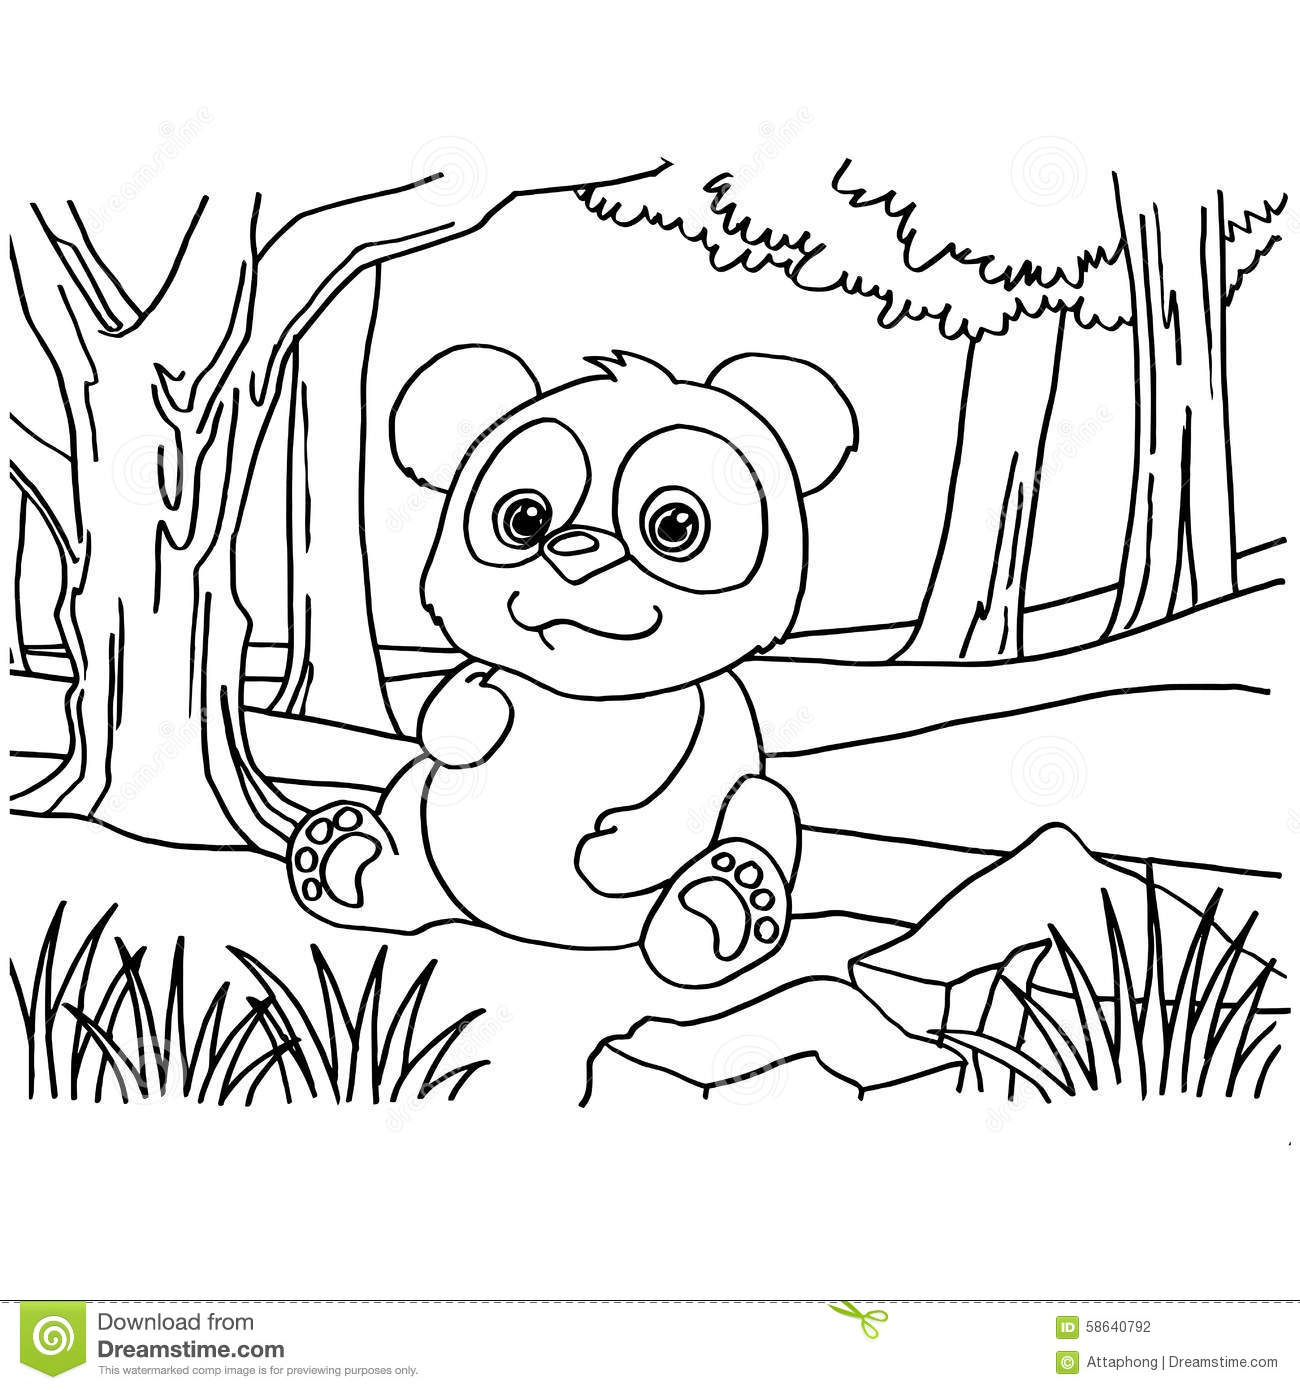 Giant Panda Coloring Pages Vector Stock Vector - Illustration of ...